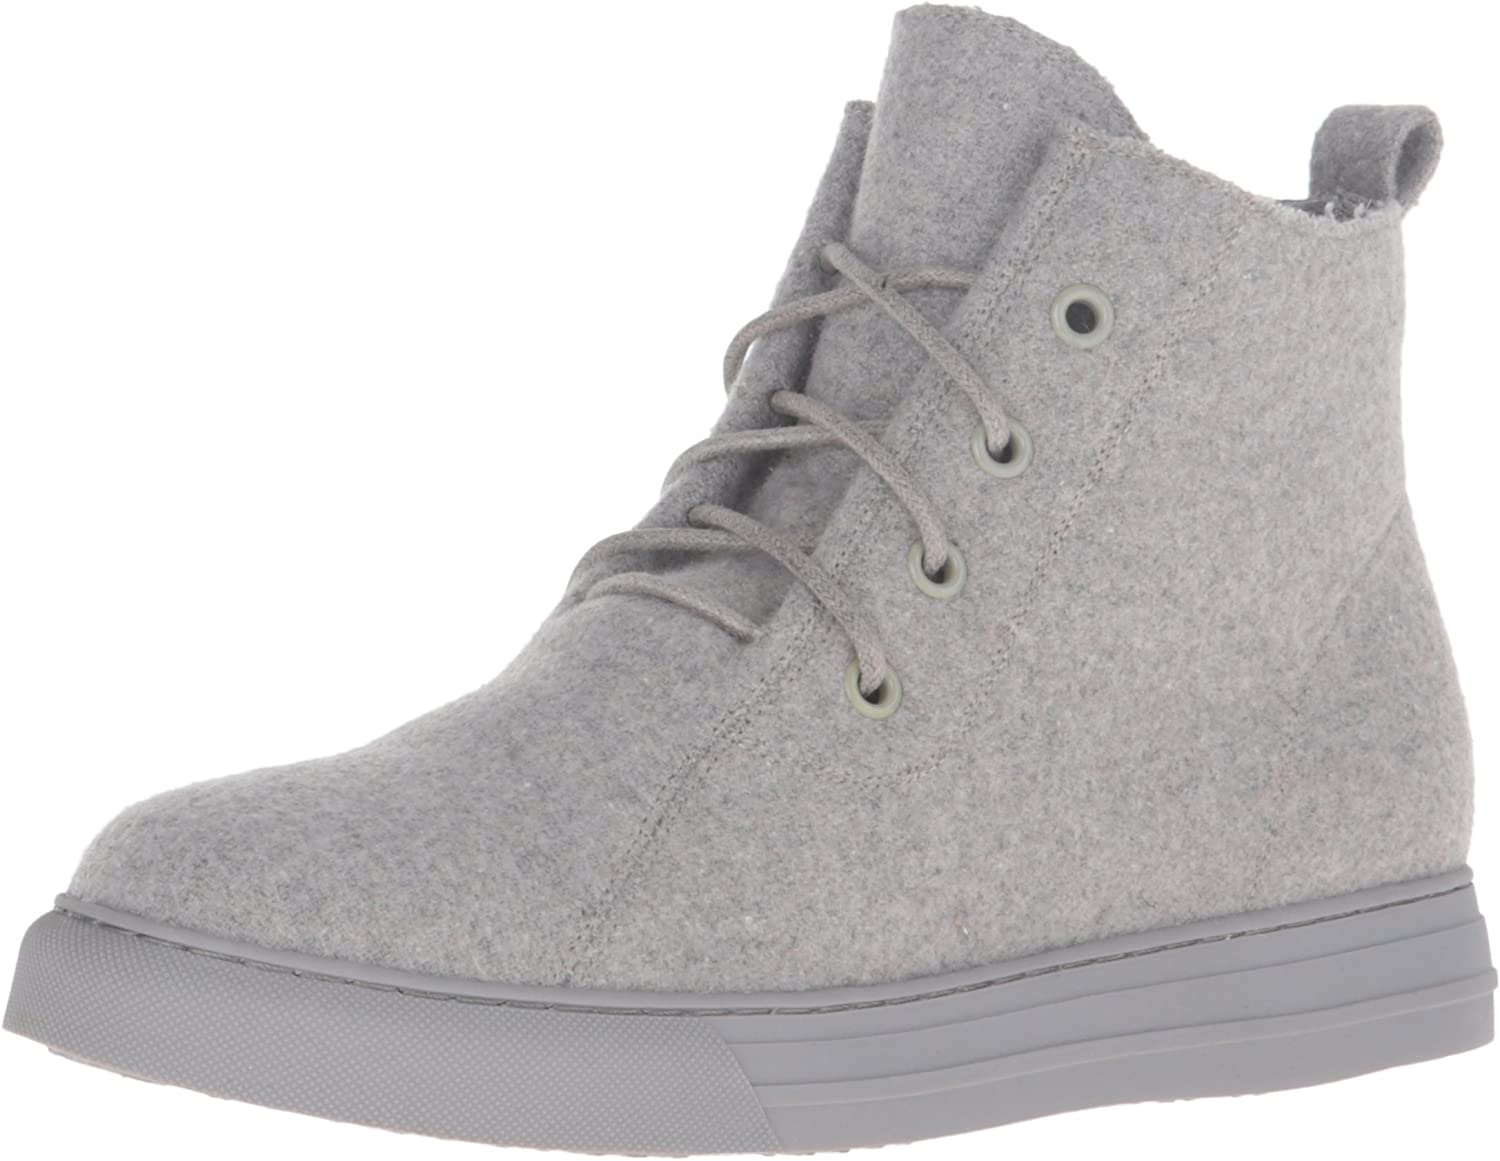 Dirty Laundry by Chinese Laundry Women's Festival Fashion Sneaker